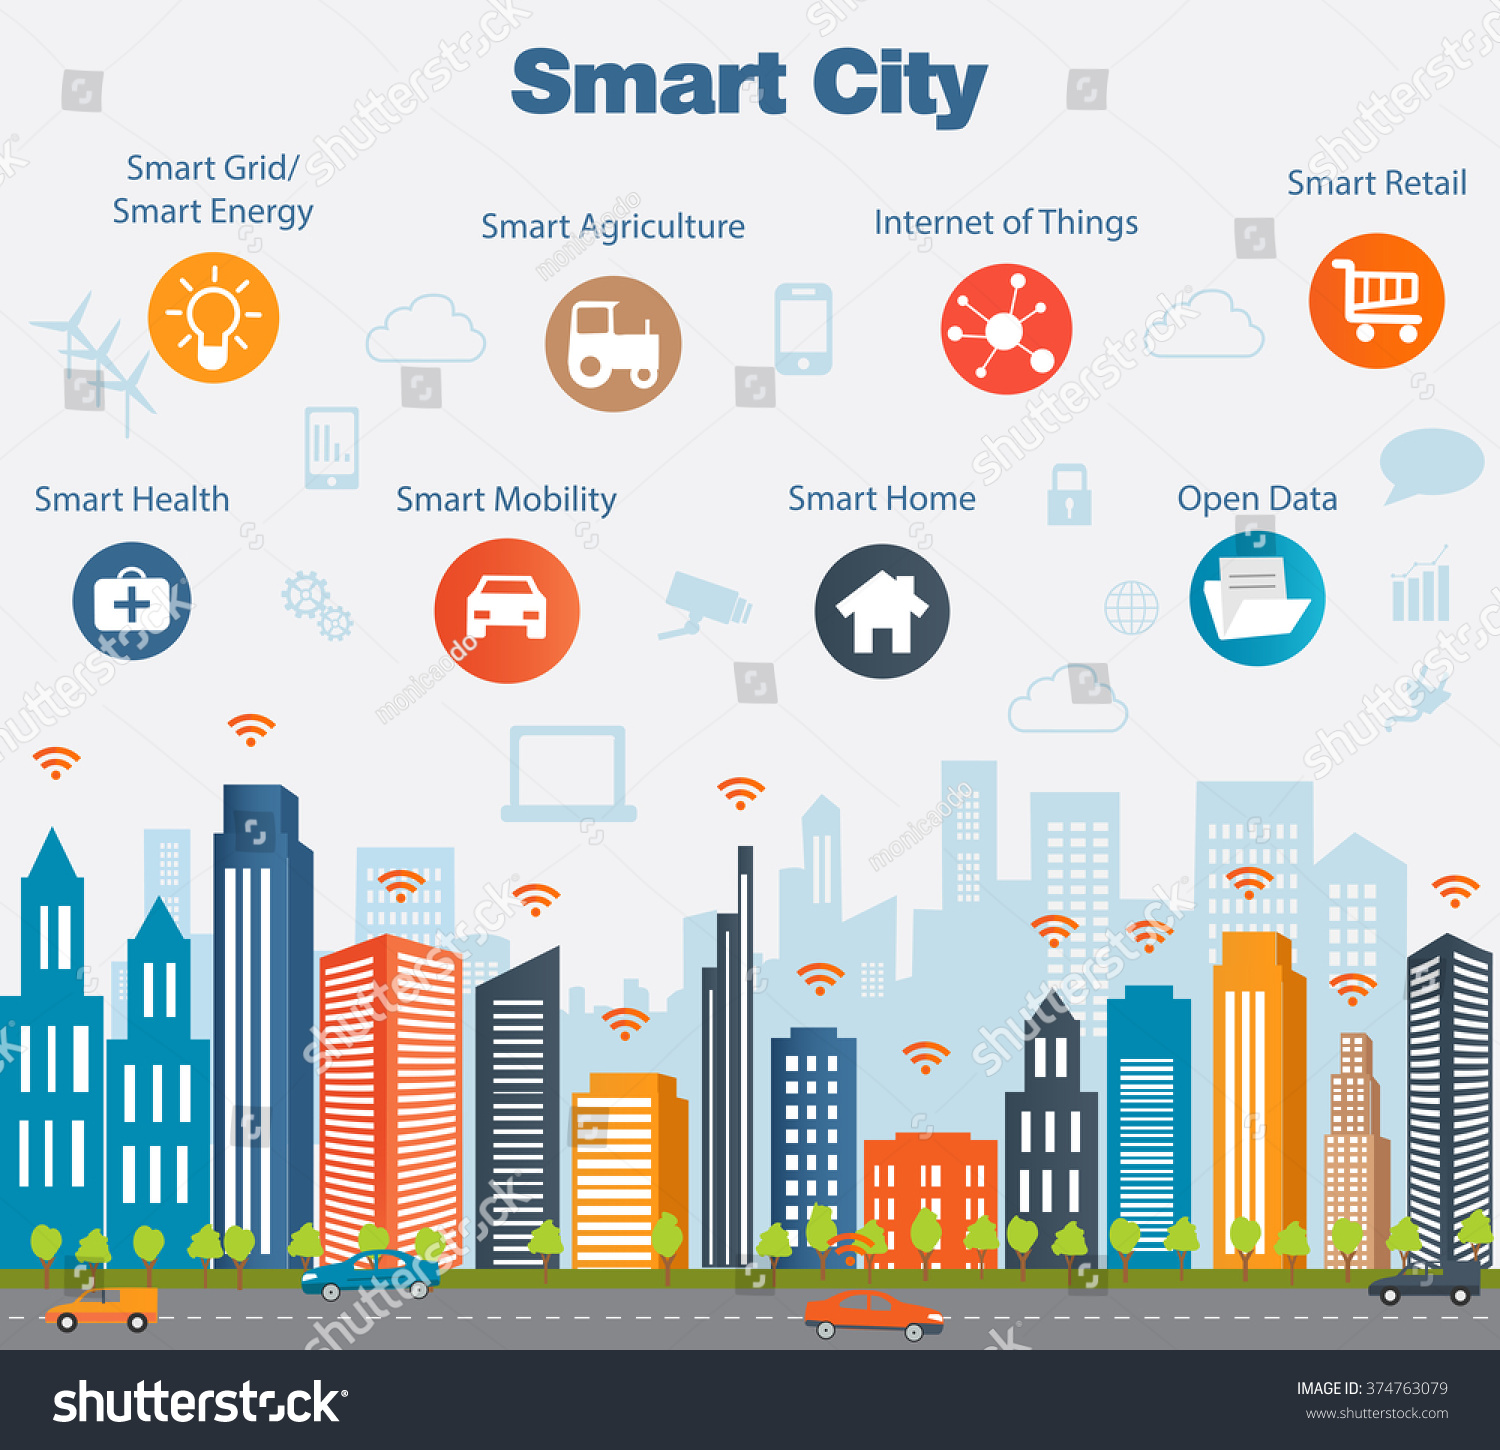 Smart City Concept With Different Icon And Elements. Modern City